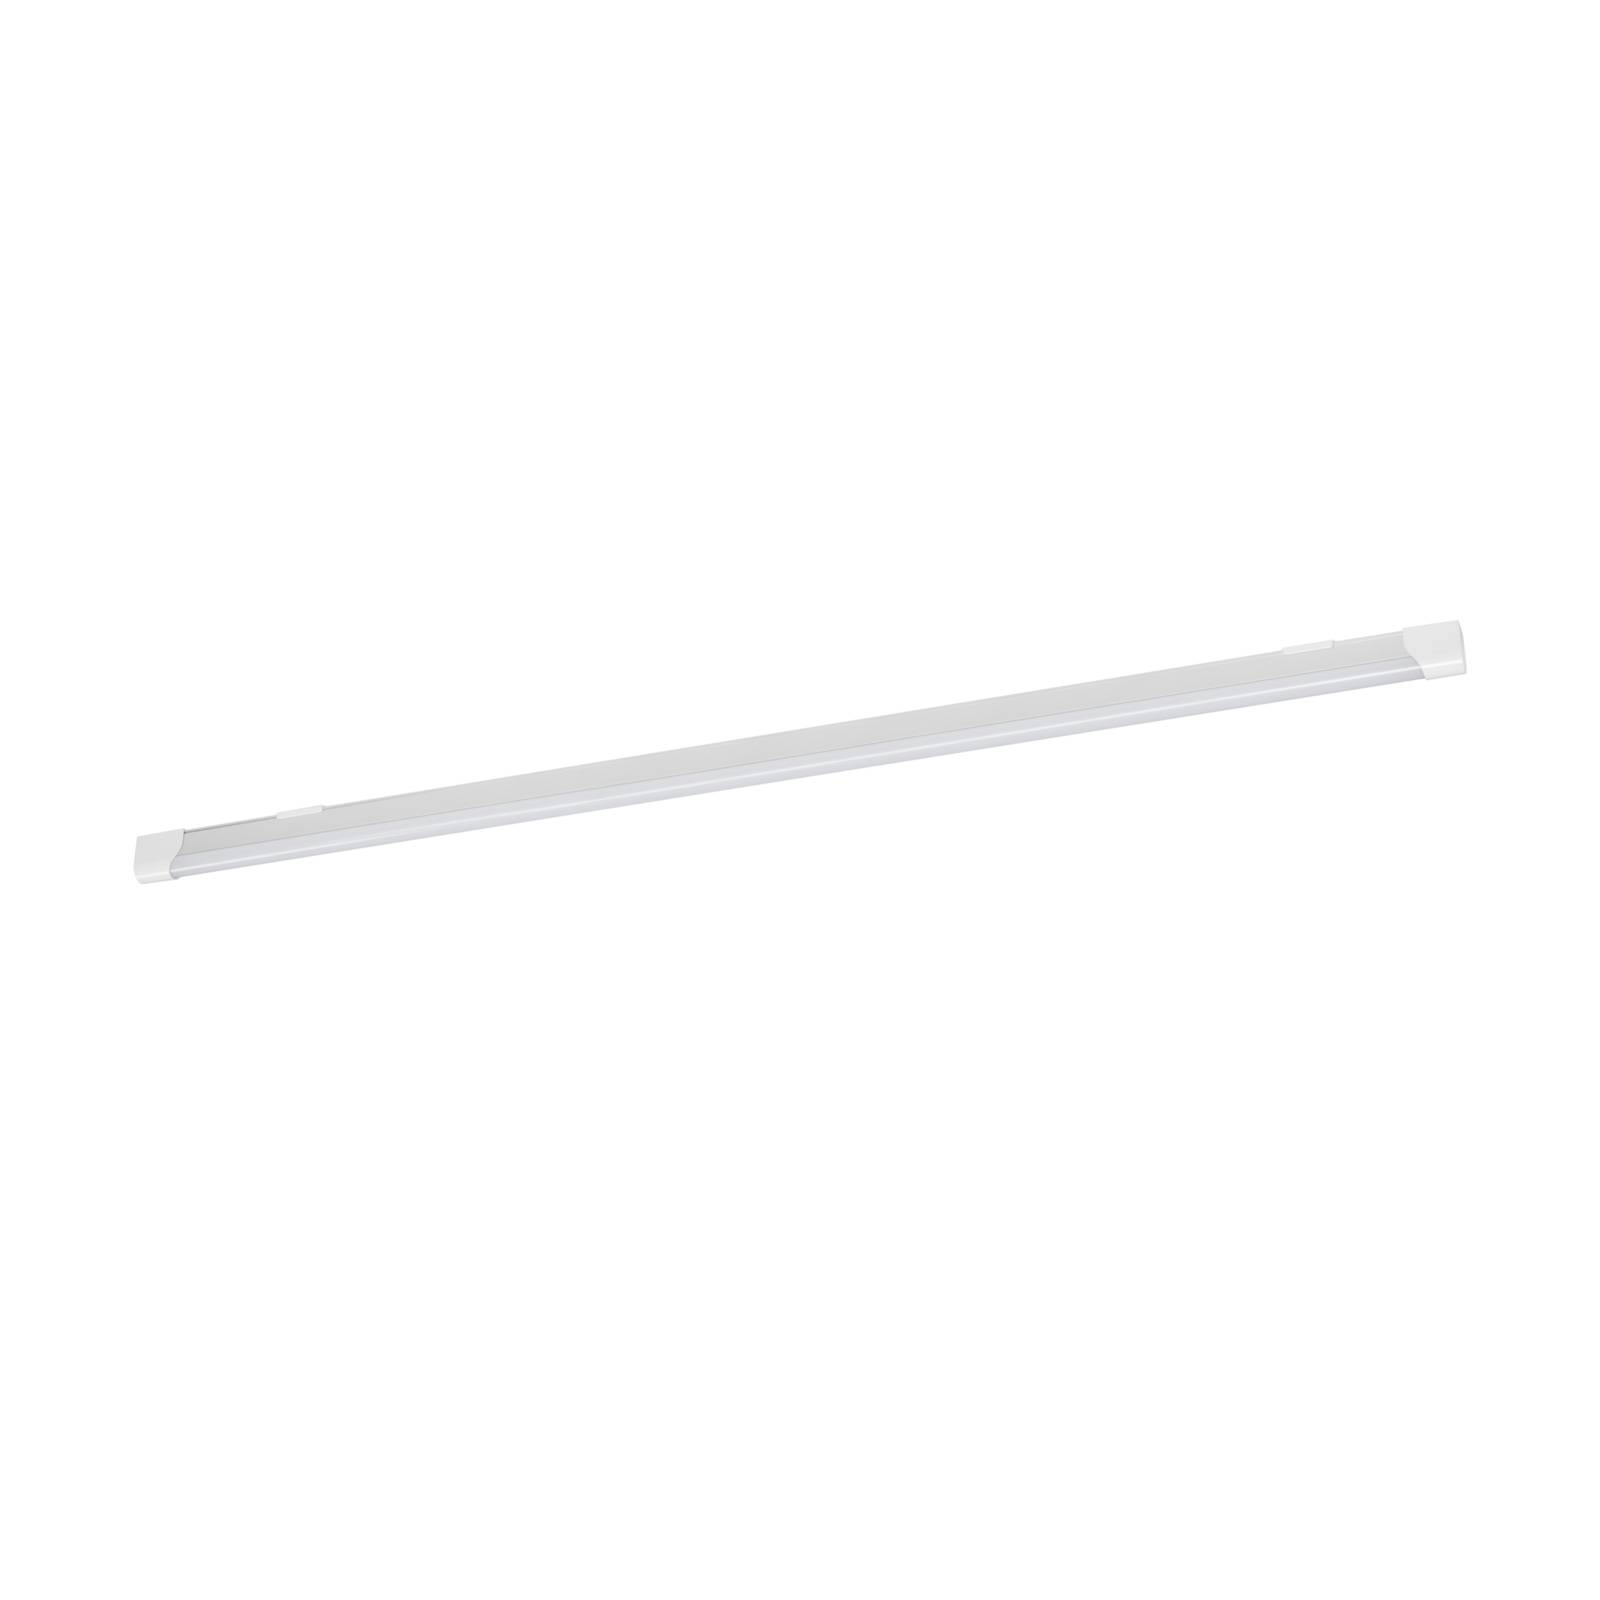 LEDVANCE Value Batten LED-Lichtleiste 120 cm von LEDVANCE